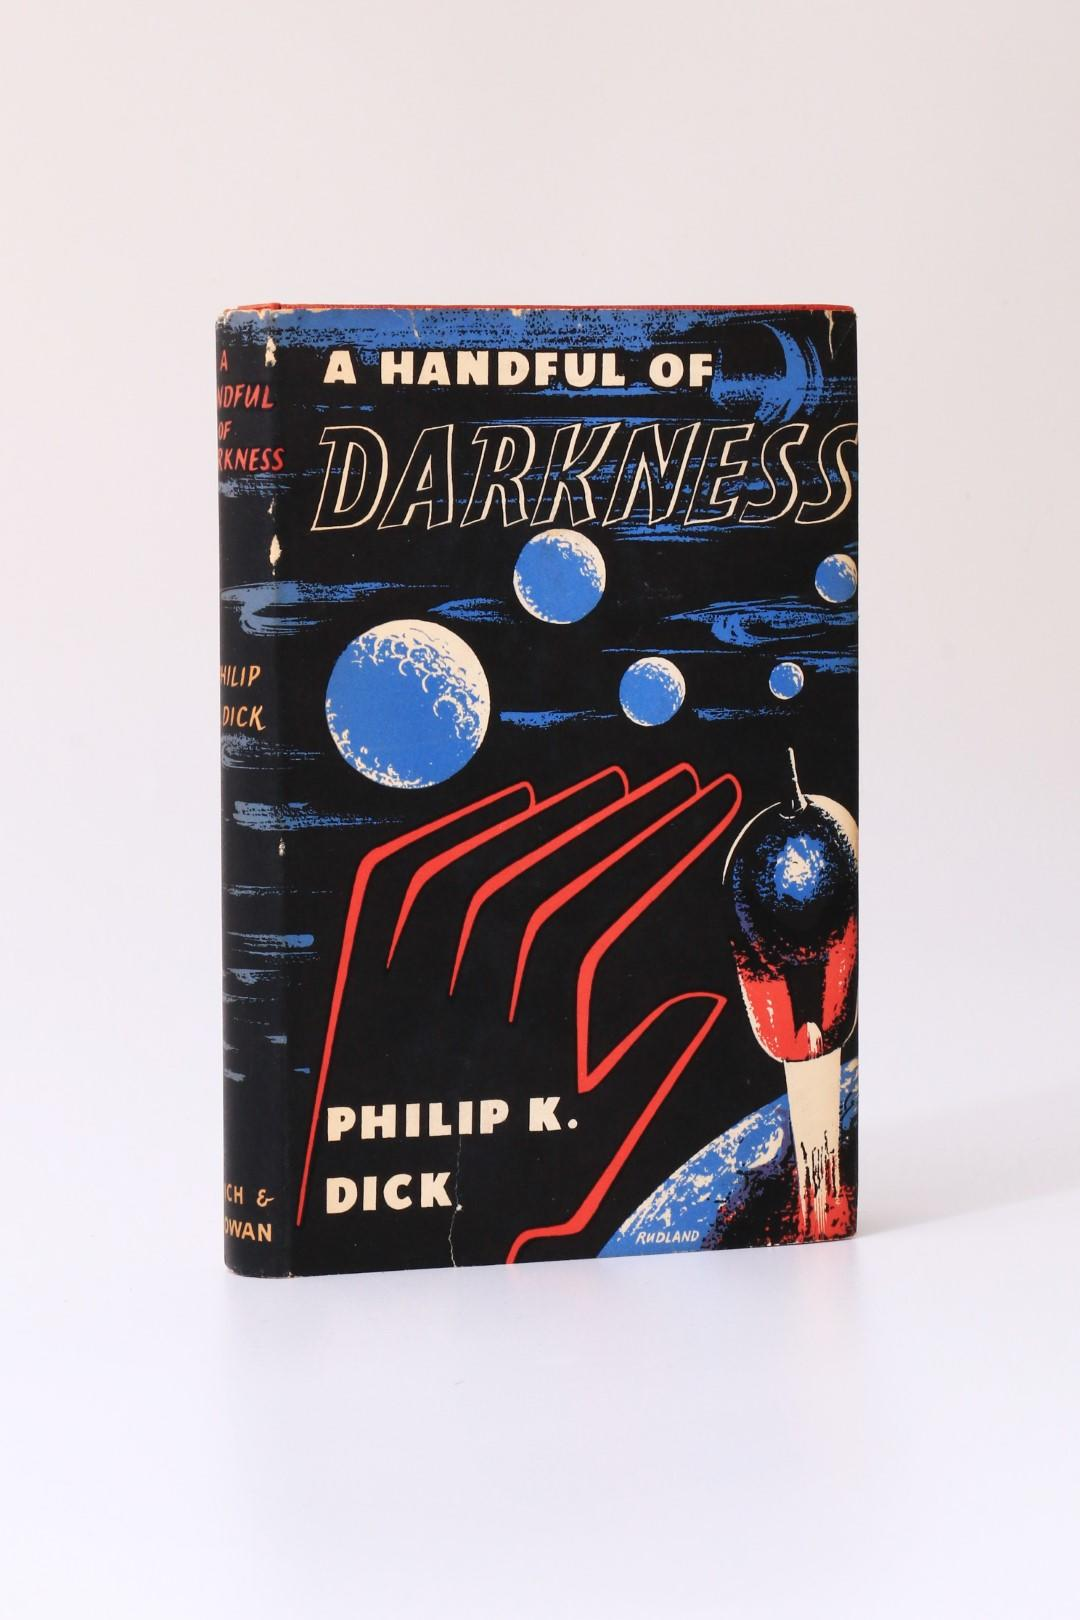 Philip K. Dick - A Handful of Darkness - Rich & Cowan, 1955, First Edition.